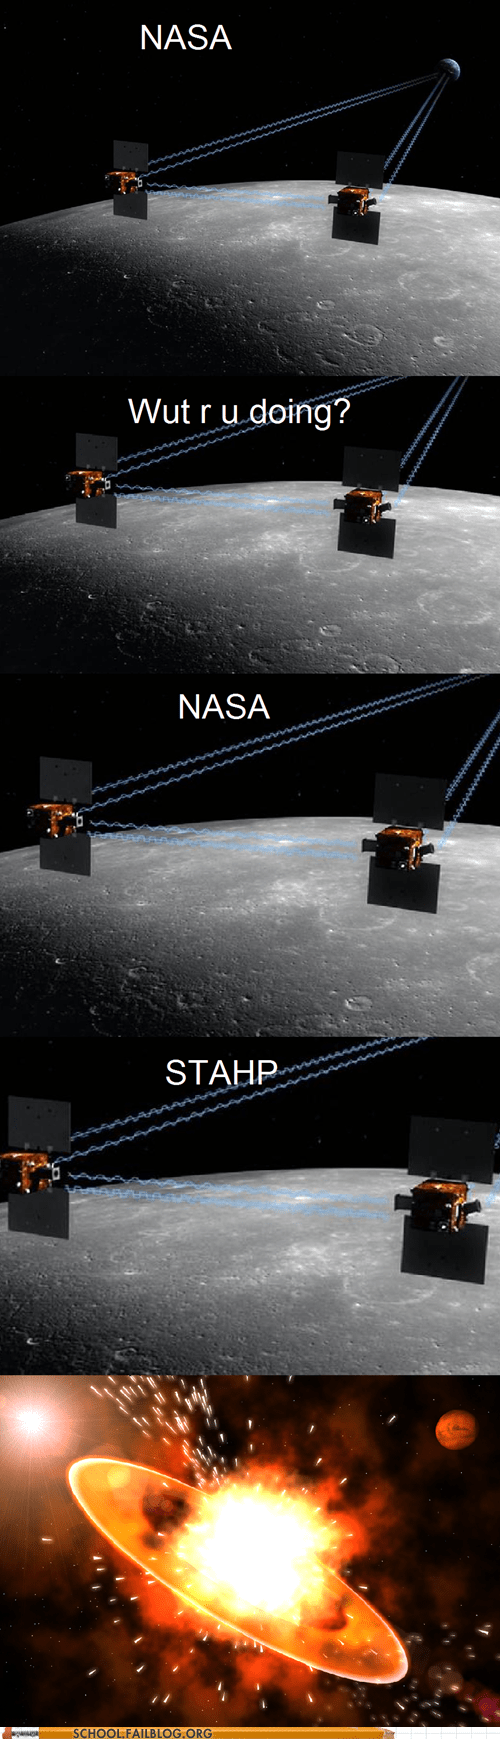 nasa,stahp,the moon,Astronomy,science,space